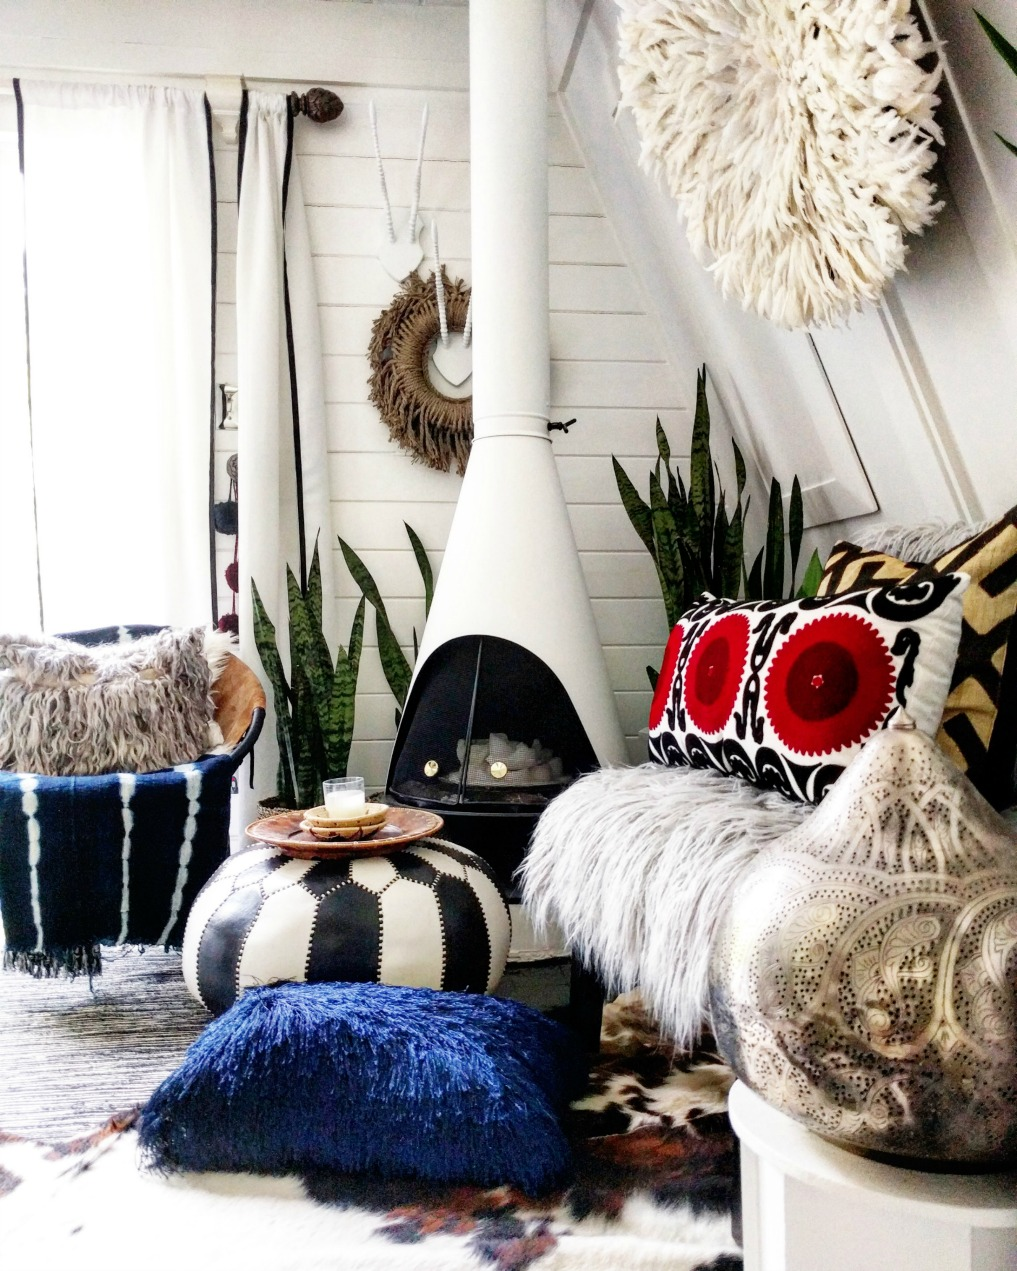 Eclectic Home Tour - Insieme House - tour this tiny house with boho flair - love the Moroccan pouf and the African Juju hat